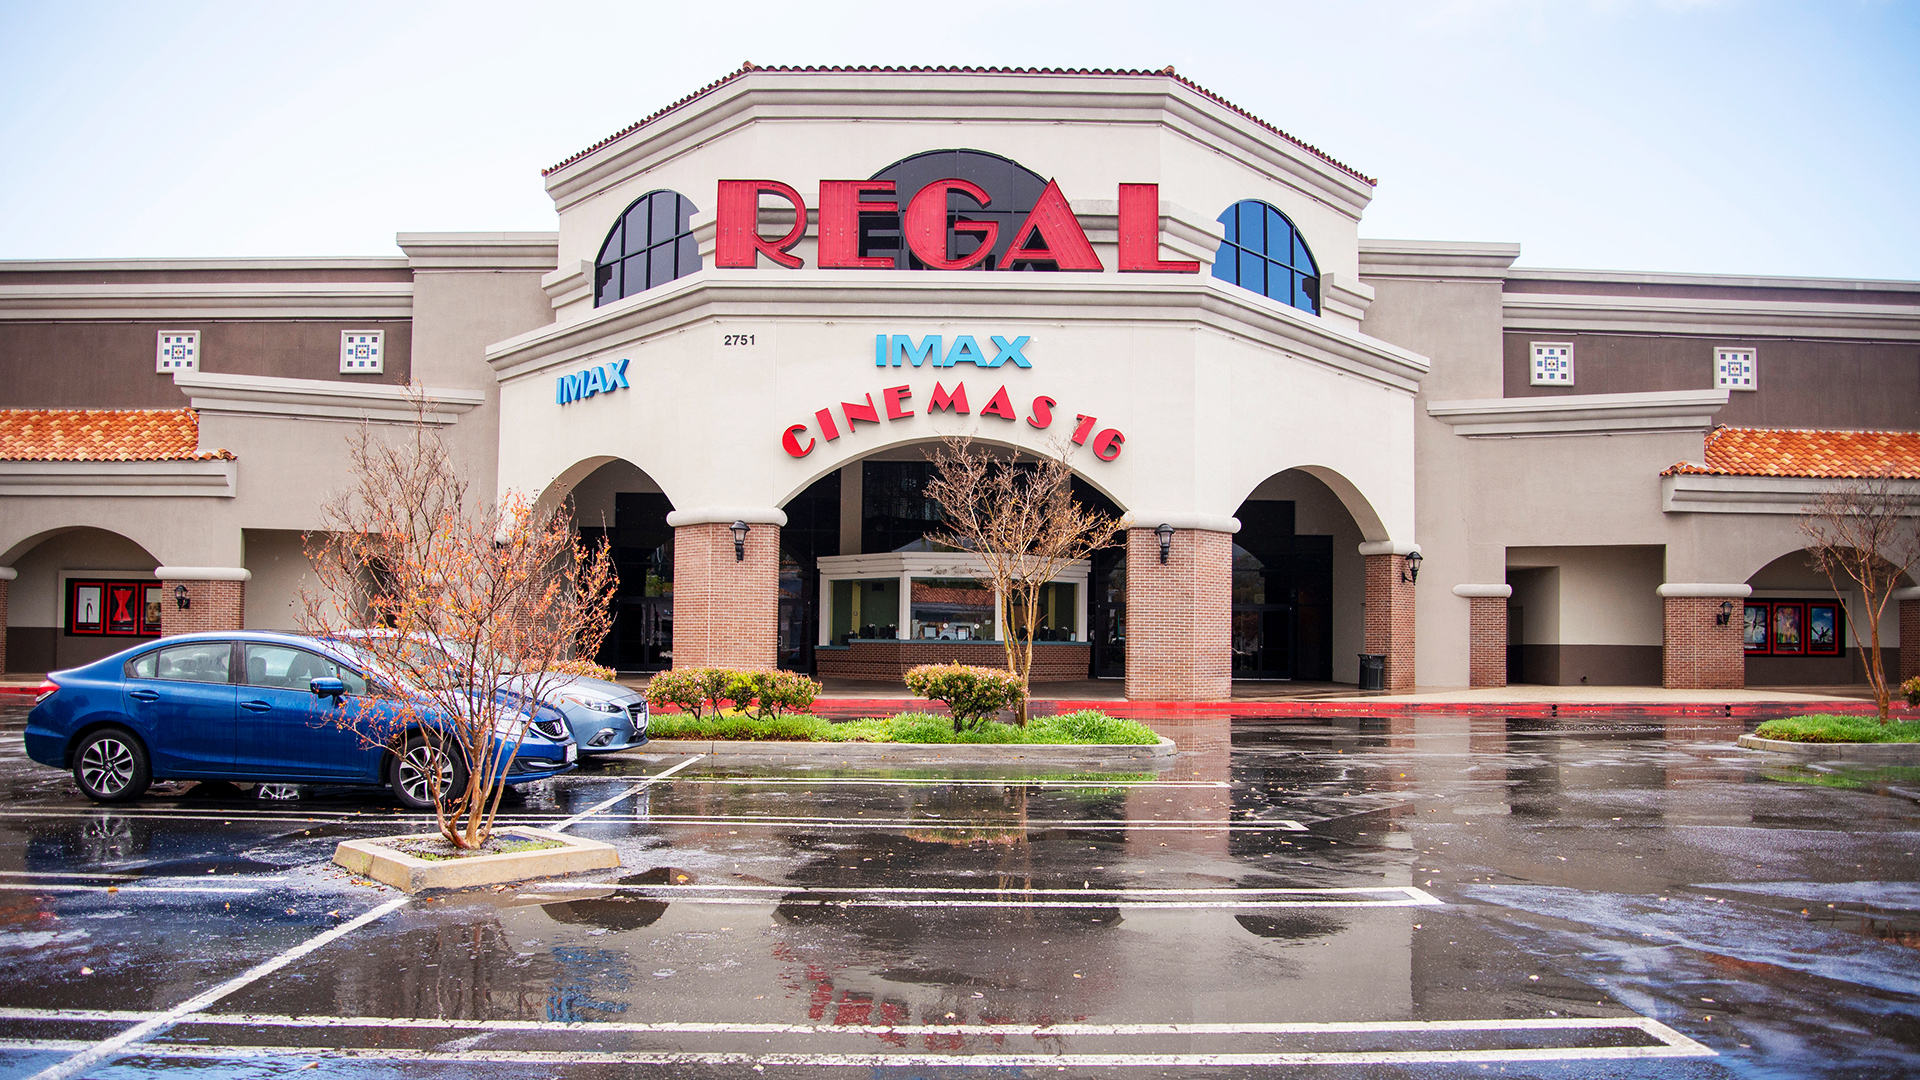 Regal cinemas have closed down. Image: Shutterstock.